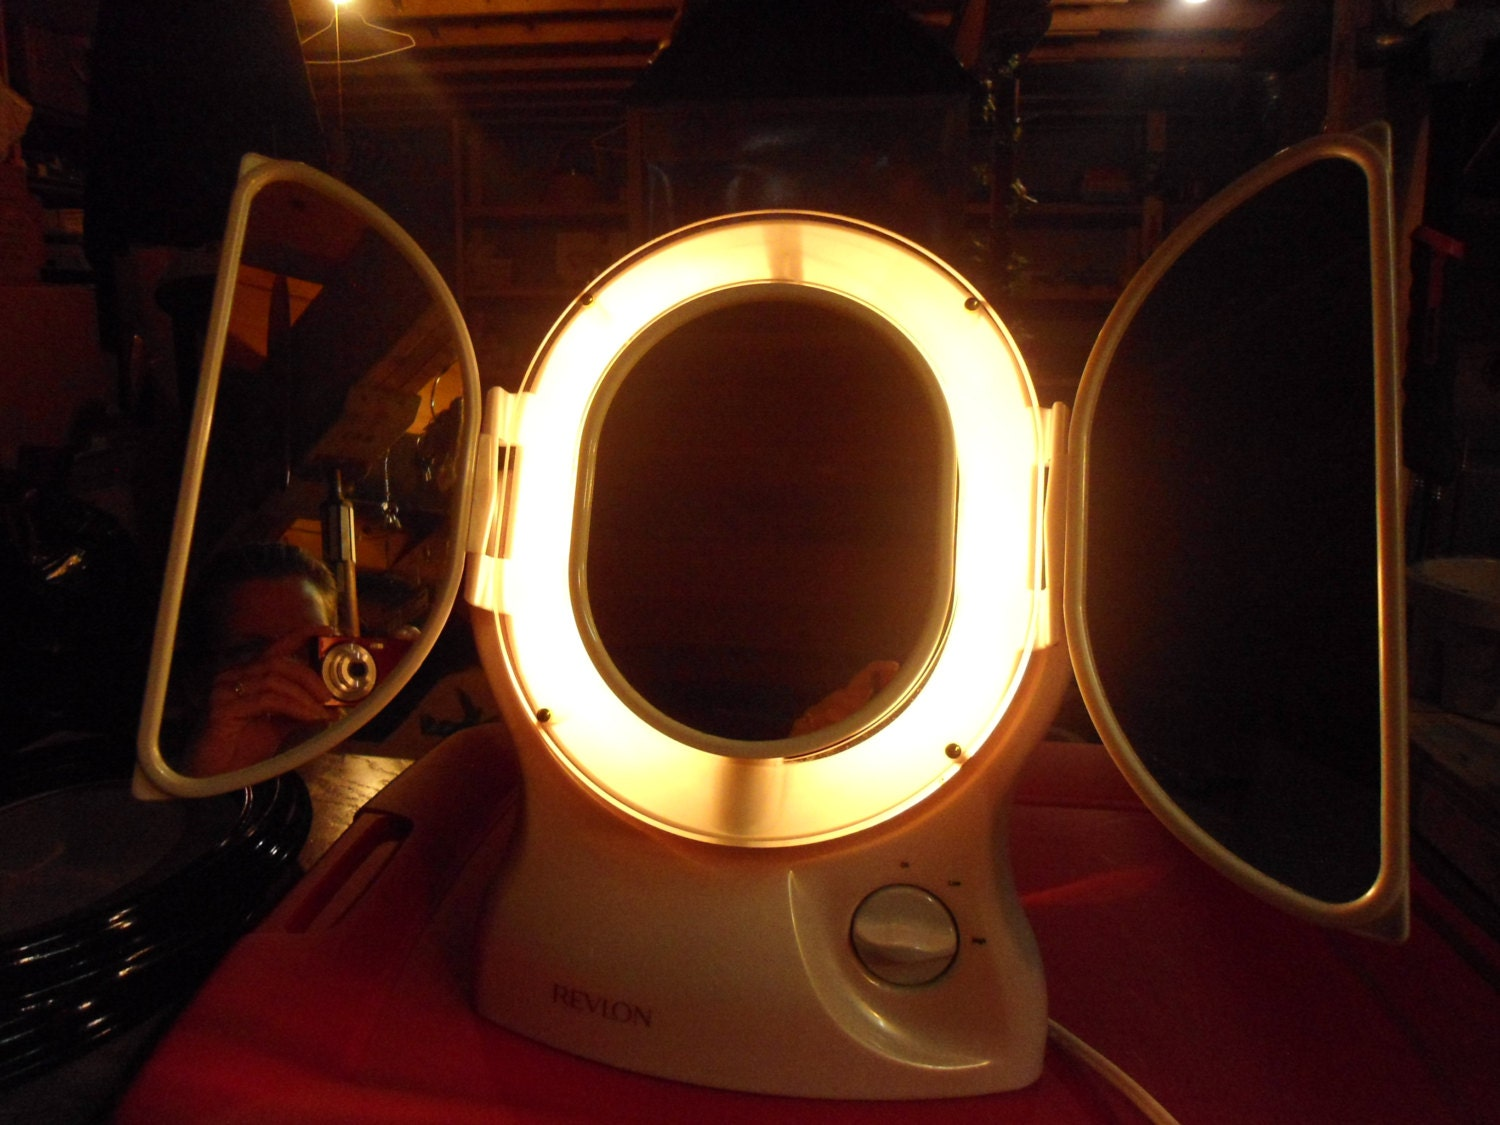 Vintage Revlon Make Up Mirror With Light